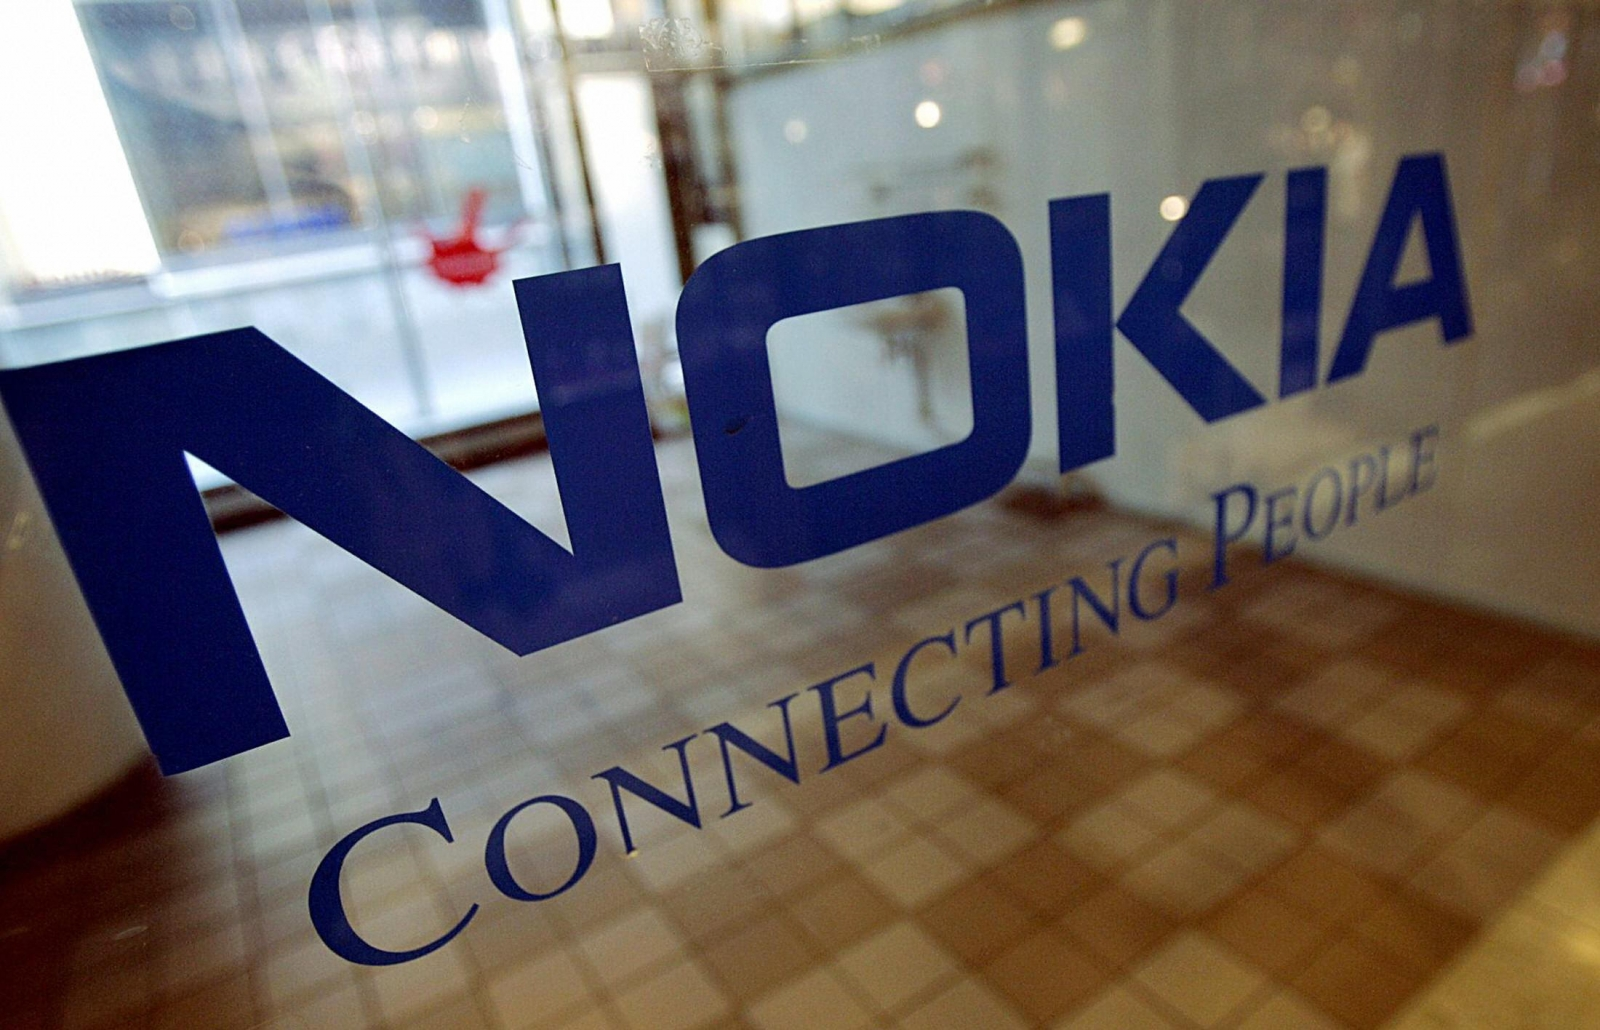 Nokia Buys Comptel for $370 Million to Add Network Software